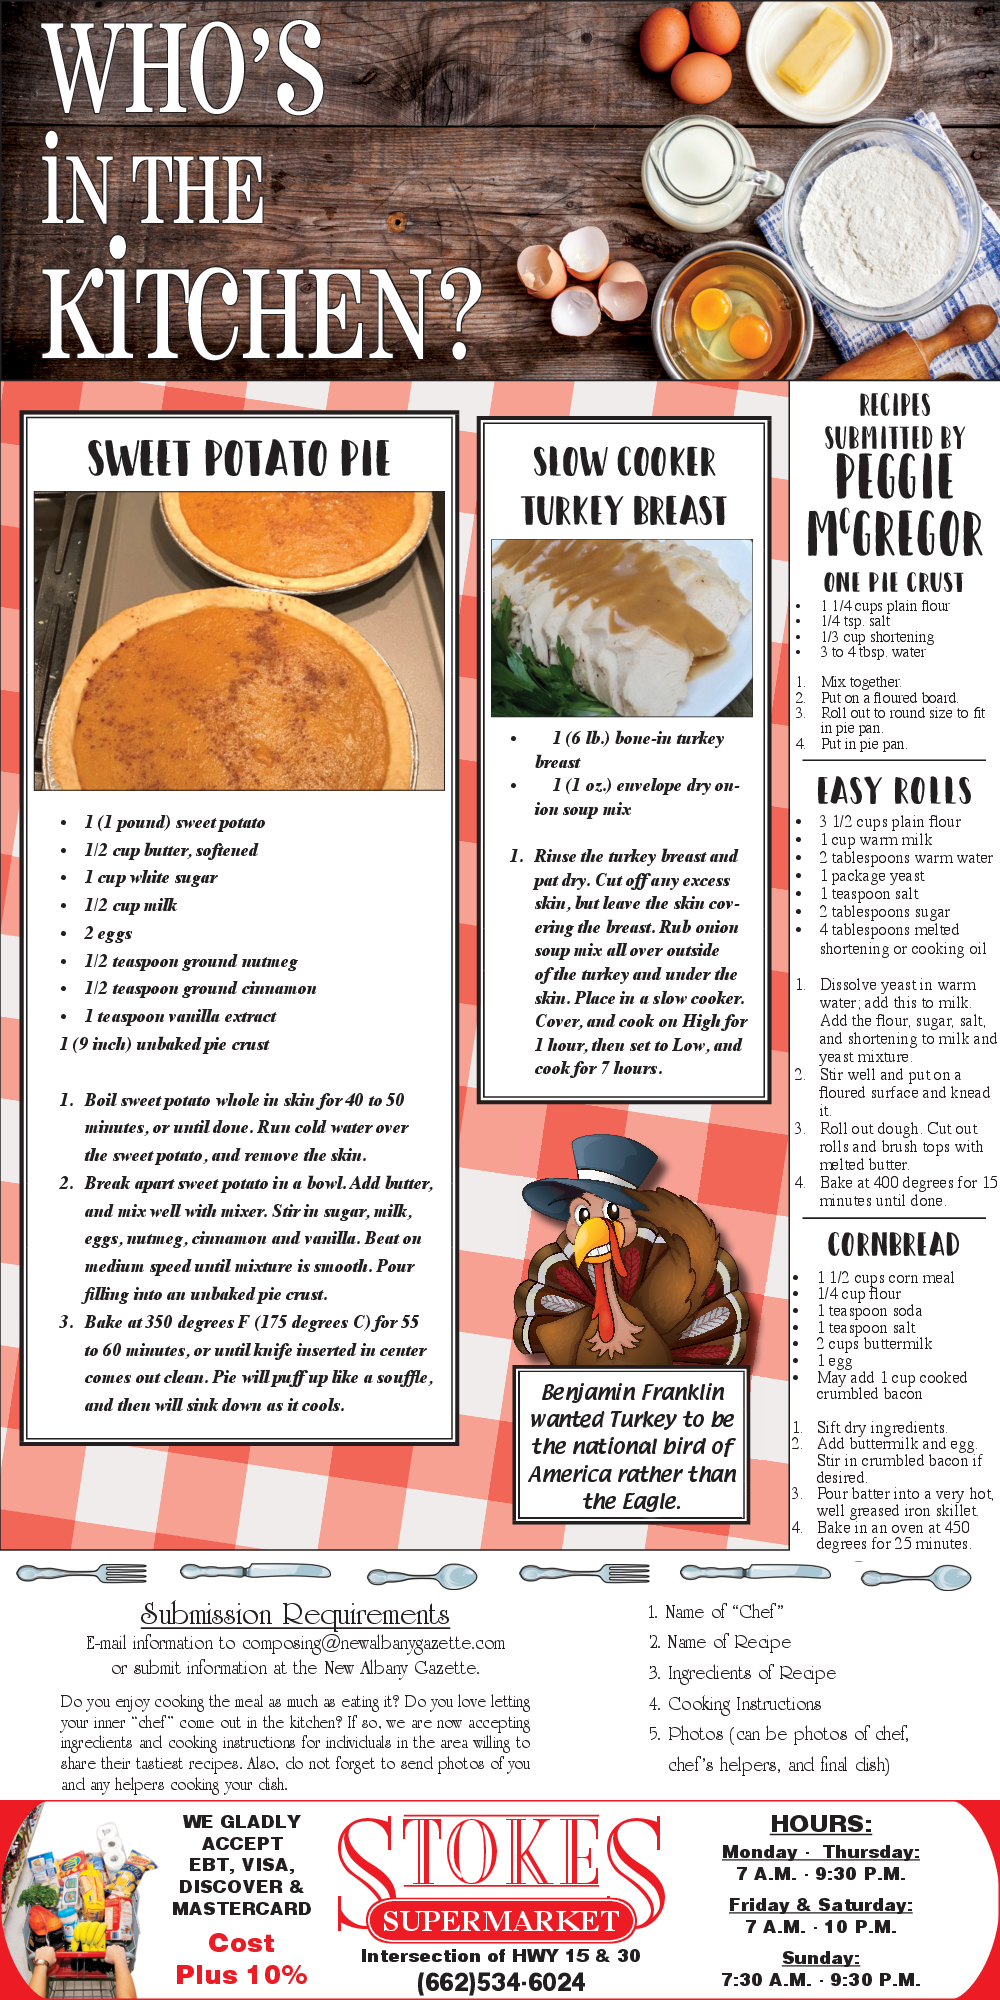 recipes submitted by peggie mcgregor in new albanay ms grocery